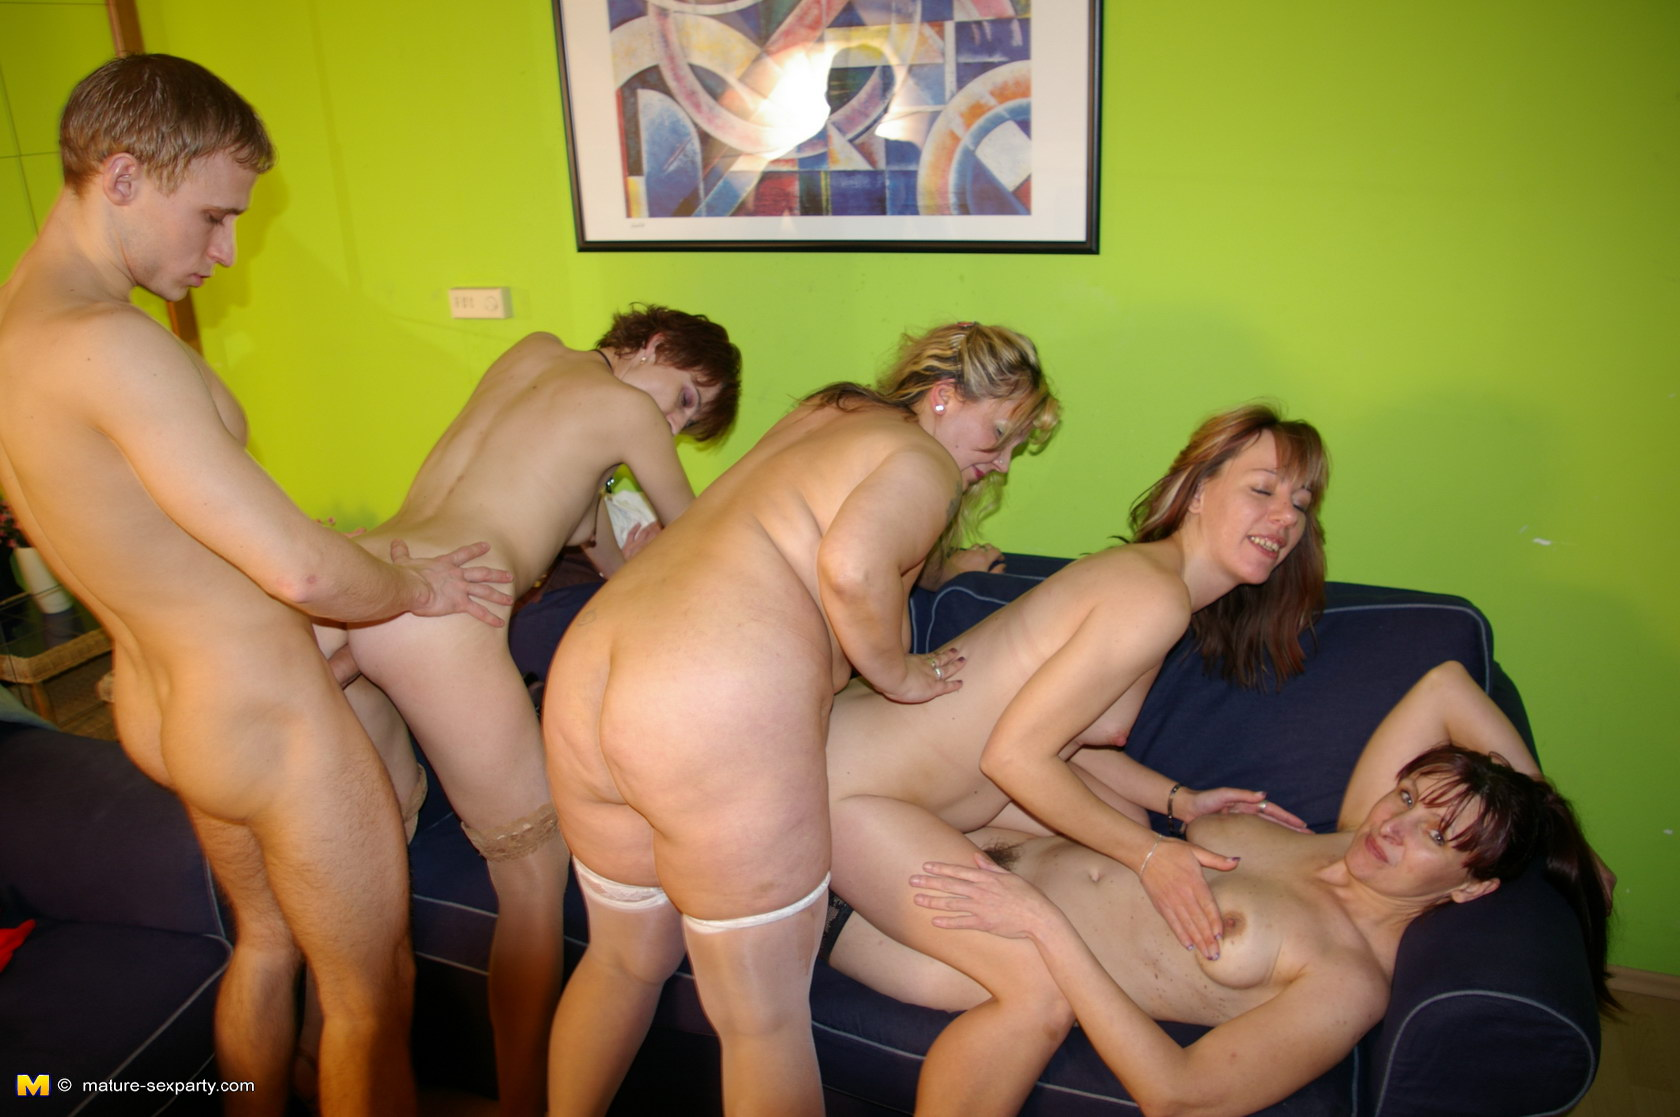 Join. All Mature adult parties remarkable, this